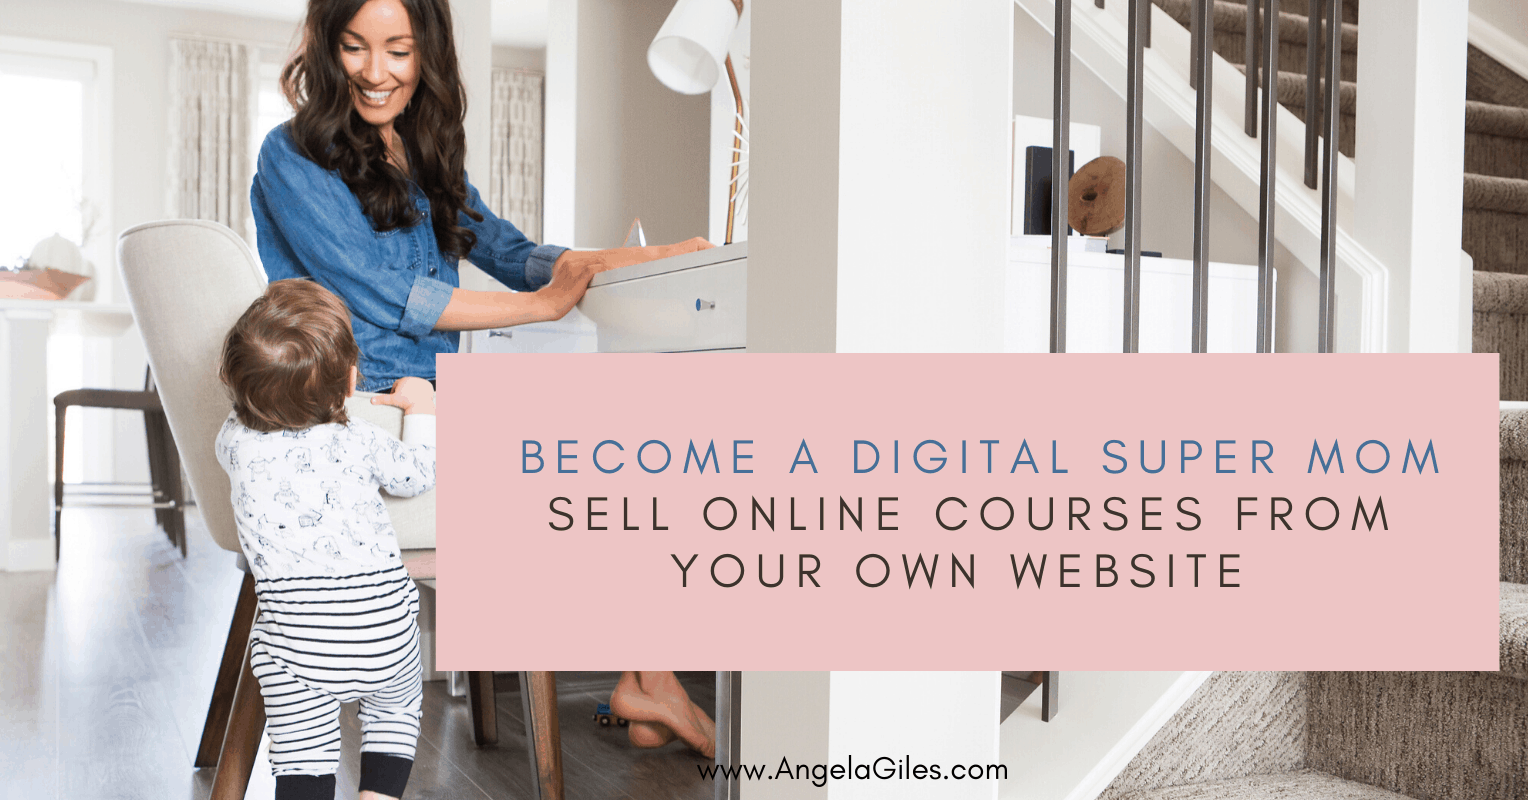 Become a Digital Super Mom: Sell Online Courses From Your Own Website